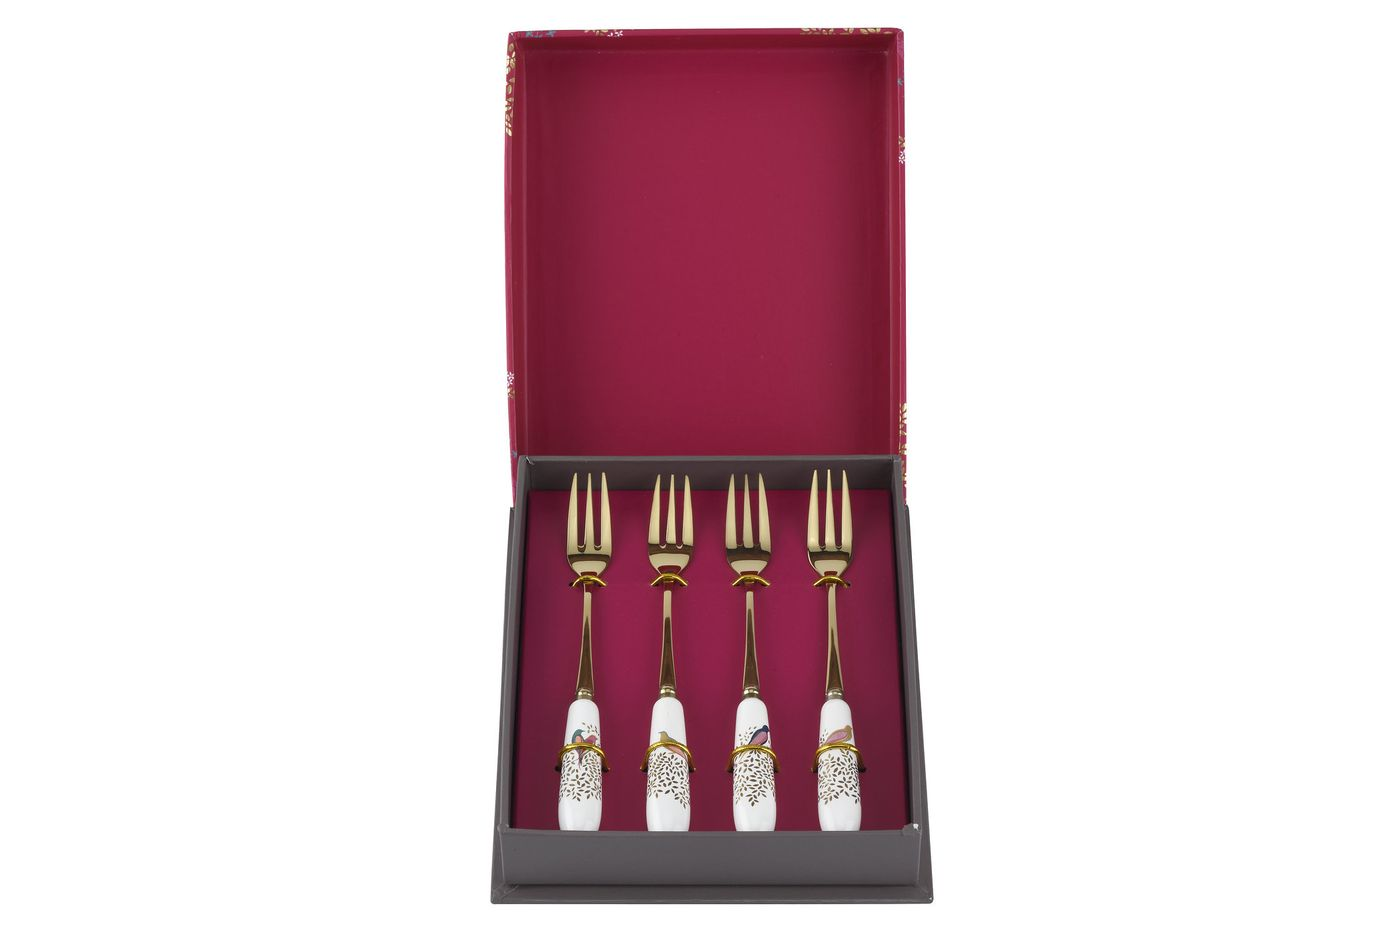 Sara Miller London for Portmeirion Chelsea Collection Pastry Fork Set Set of 4 15cm thumb 2